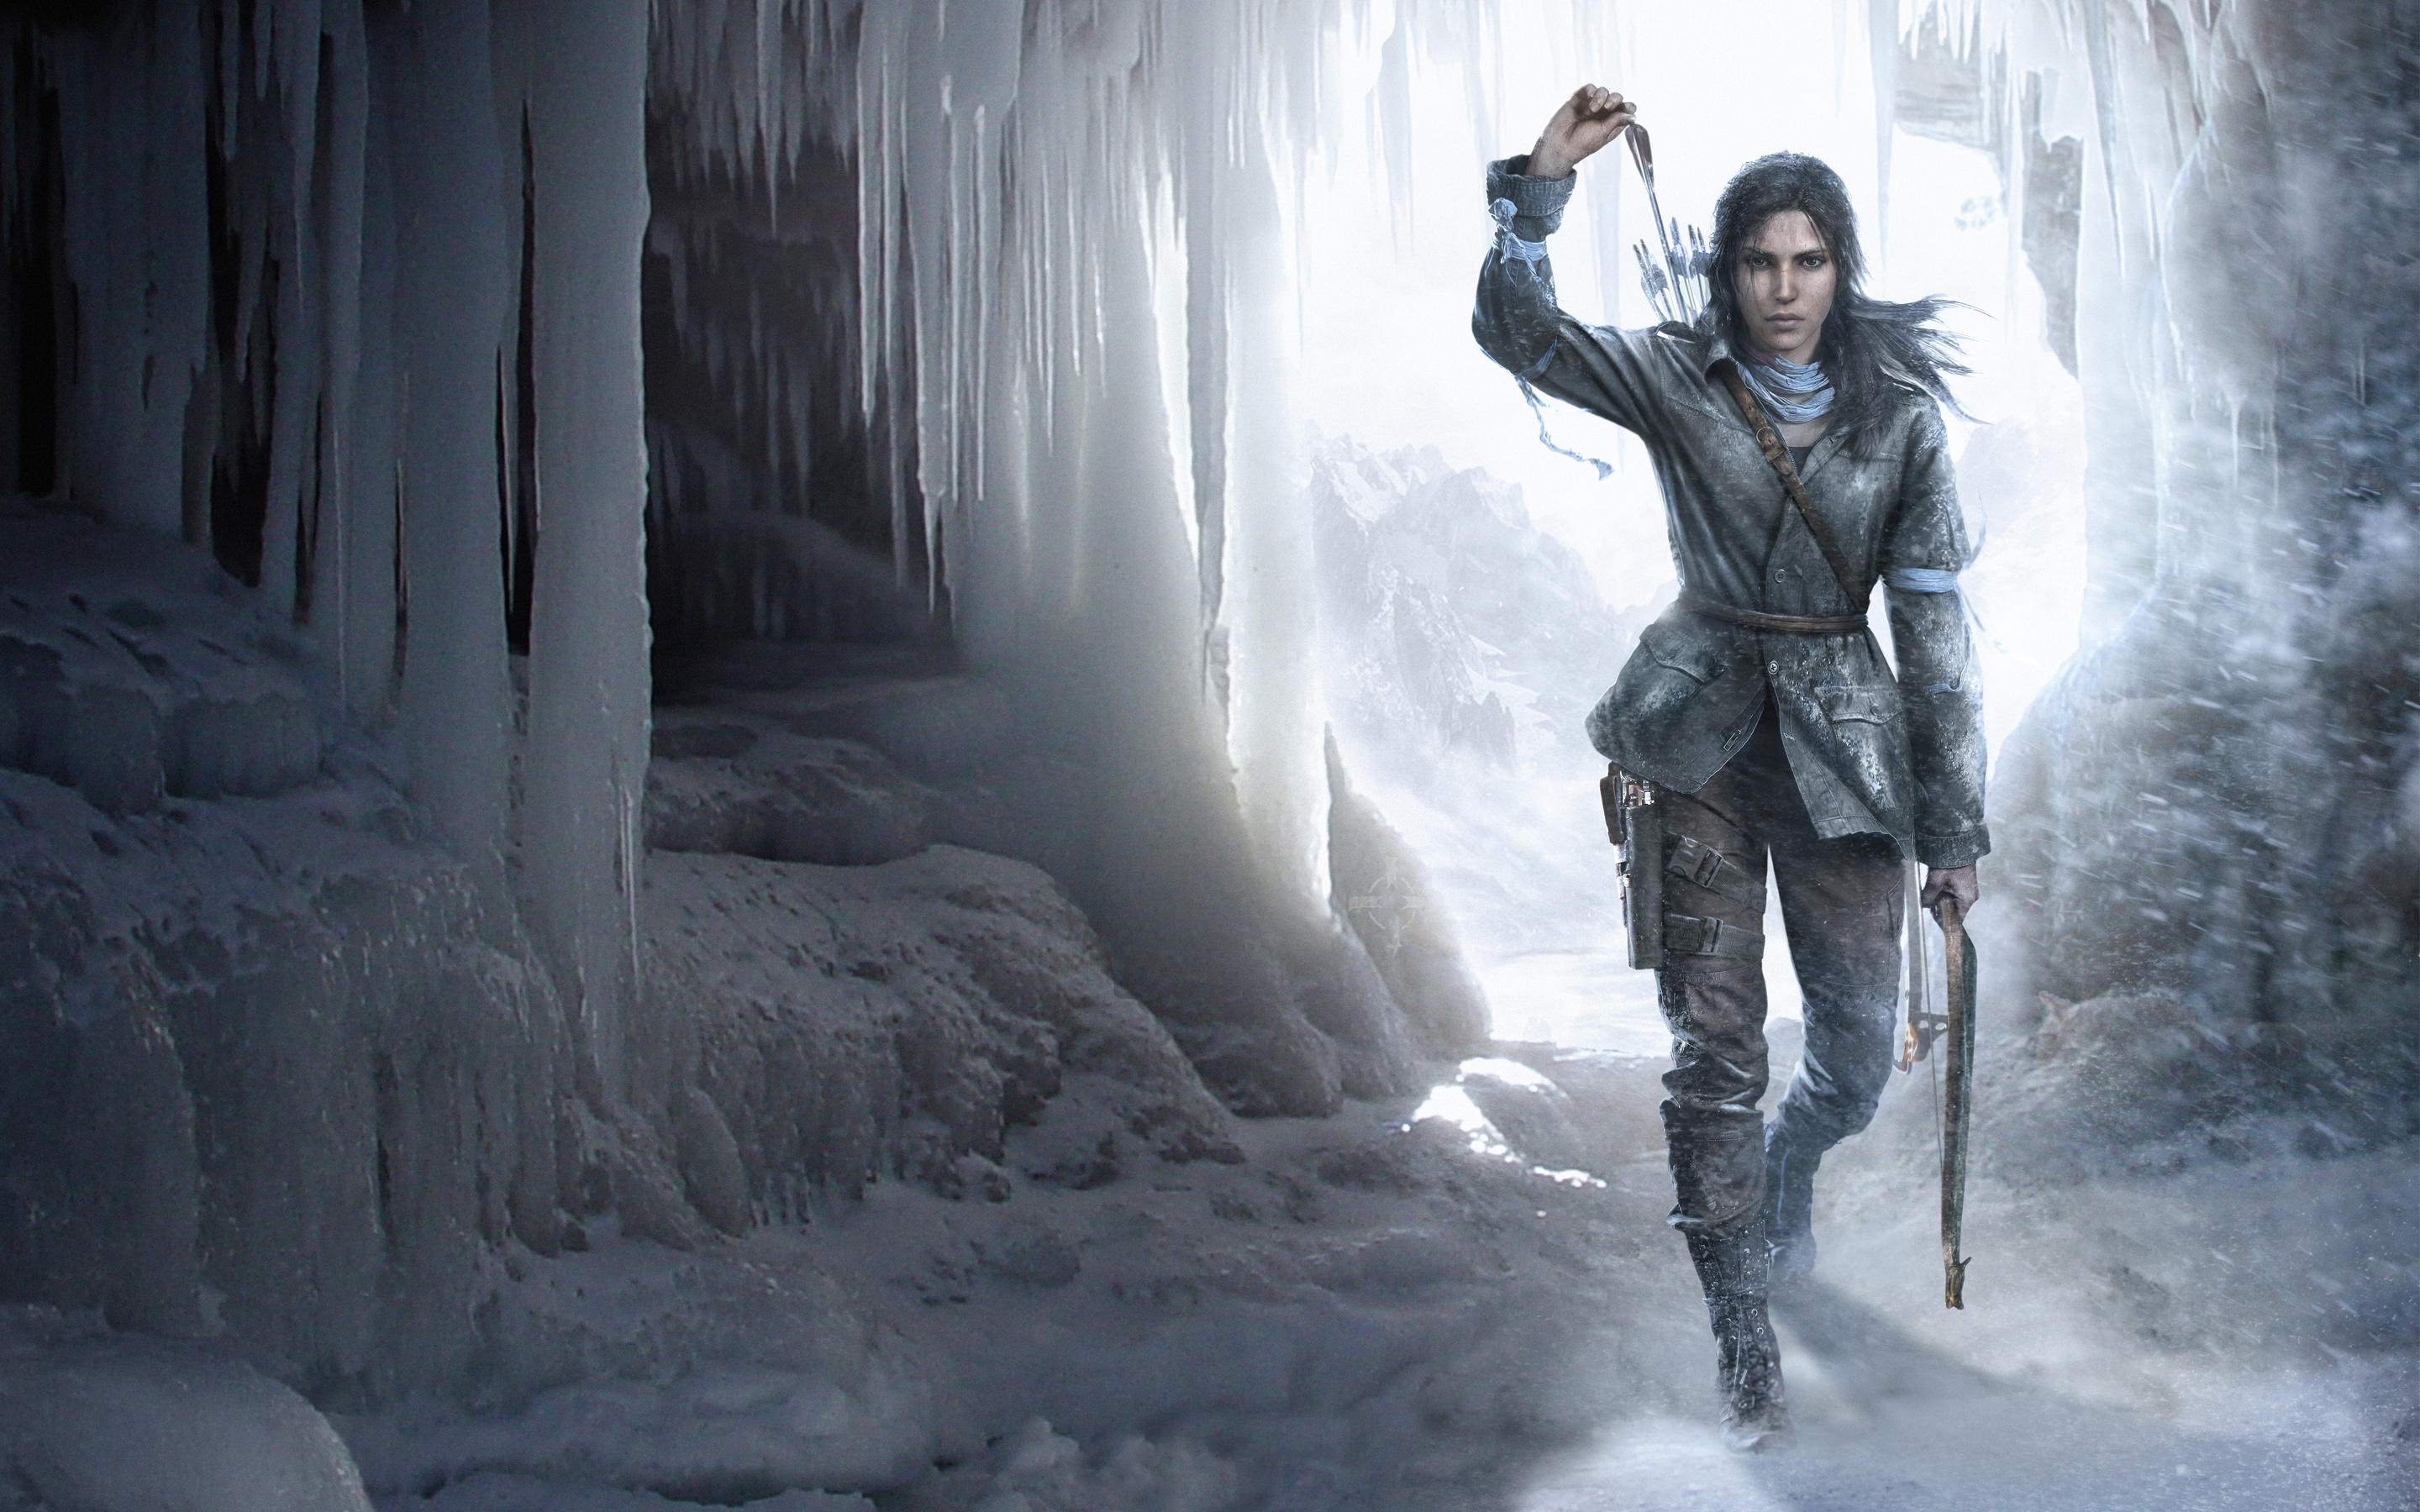 Rise Of The Tomb Raider Pics, Video Game Collection - Rise Of The Tomb Raider , HD Wallpaper & Backgrounds